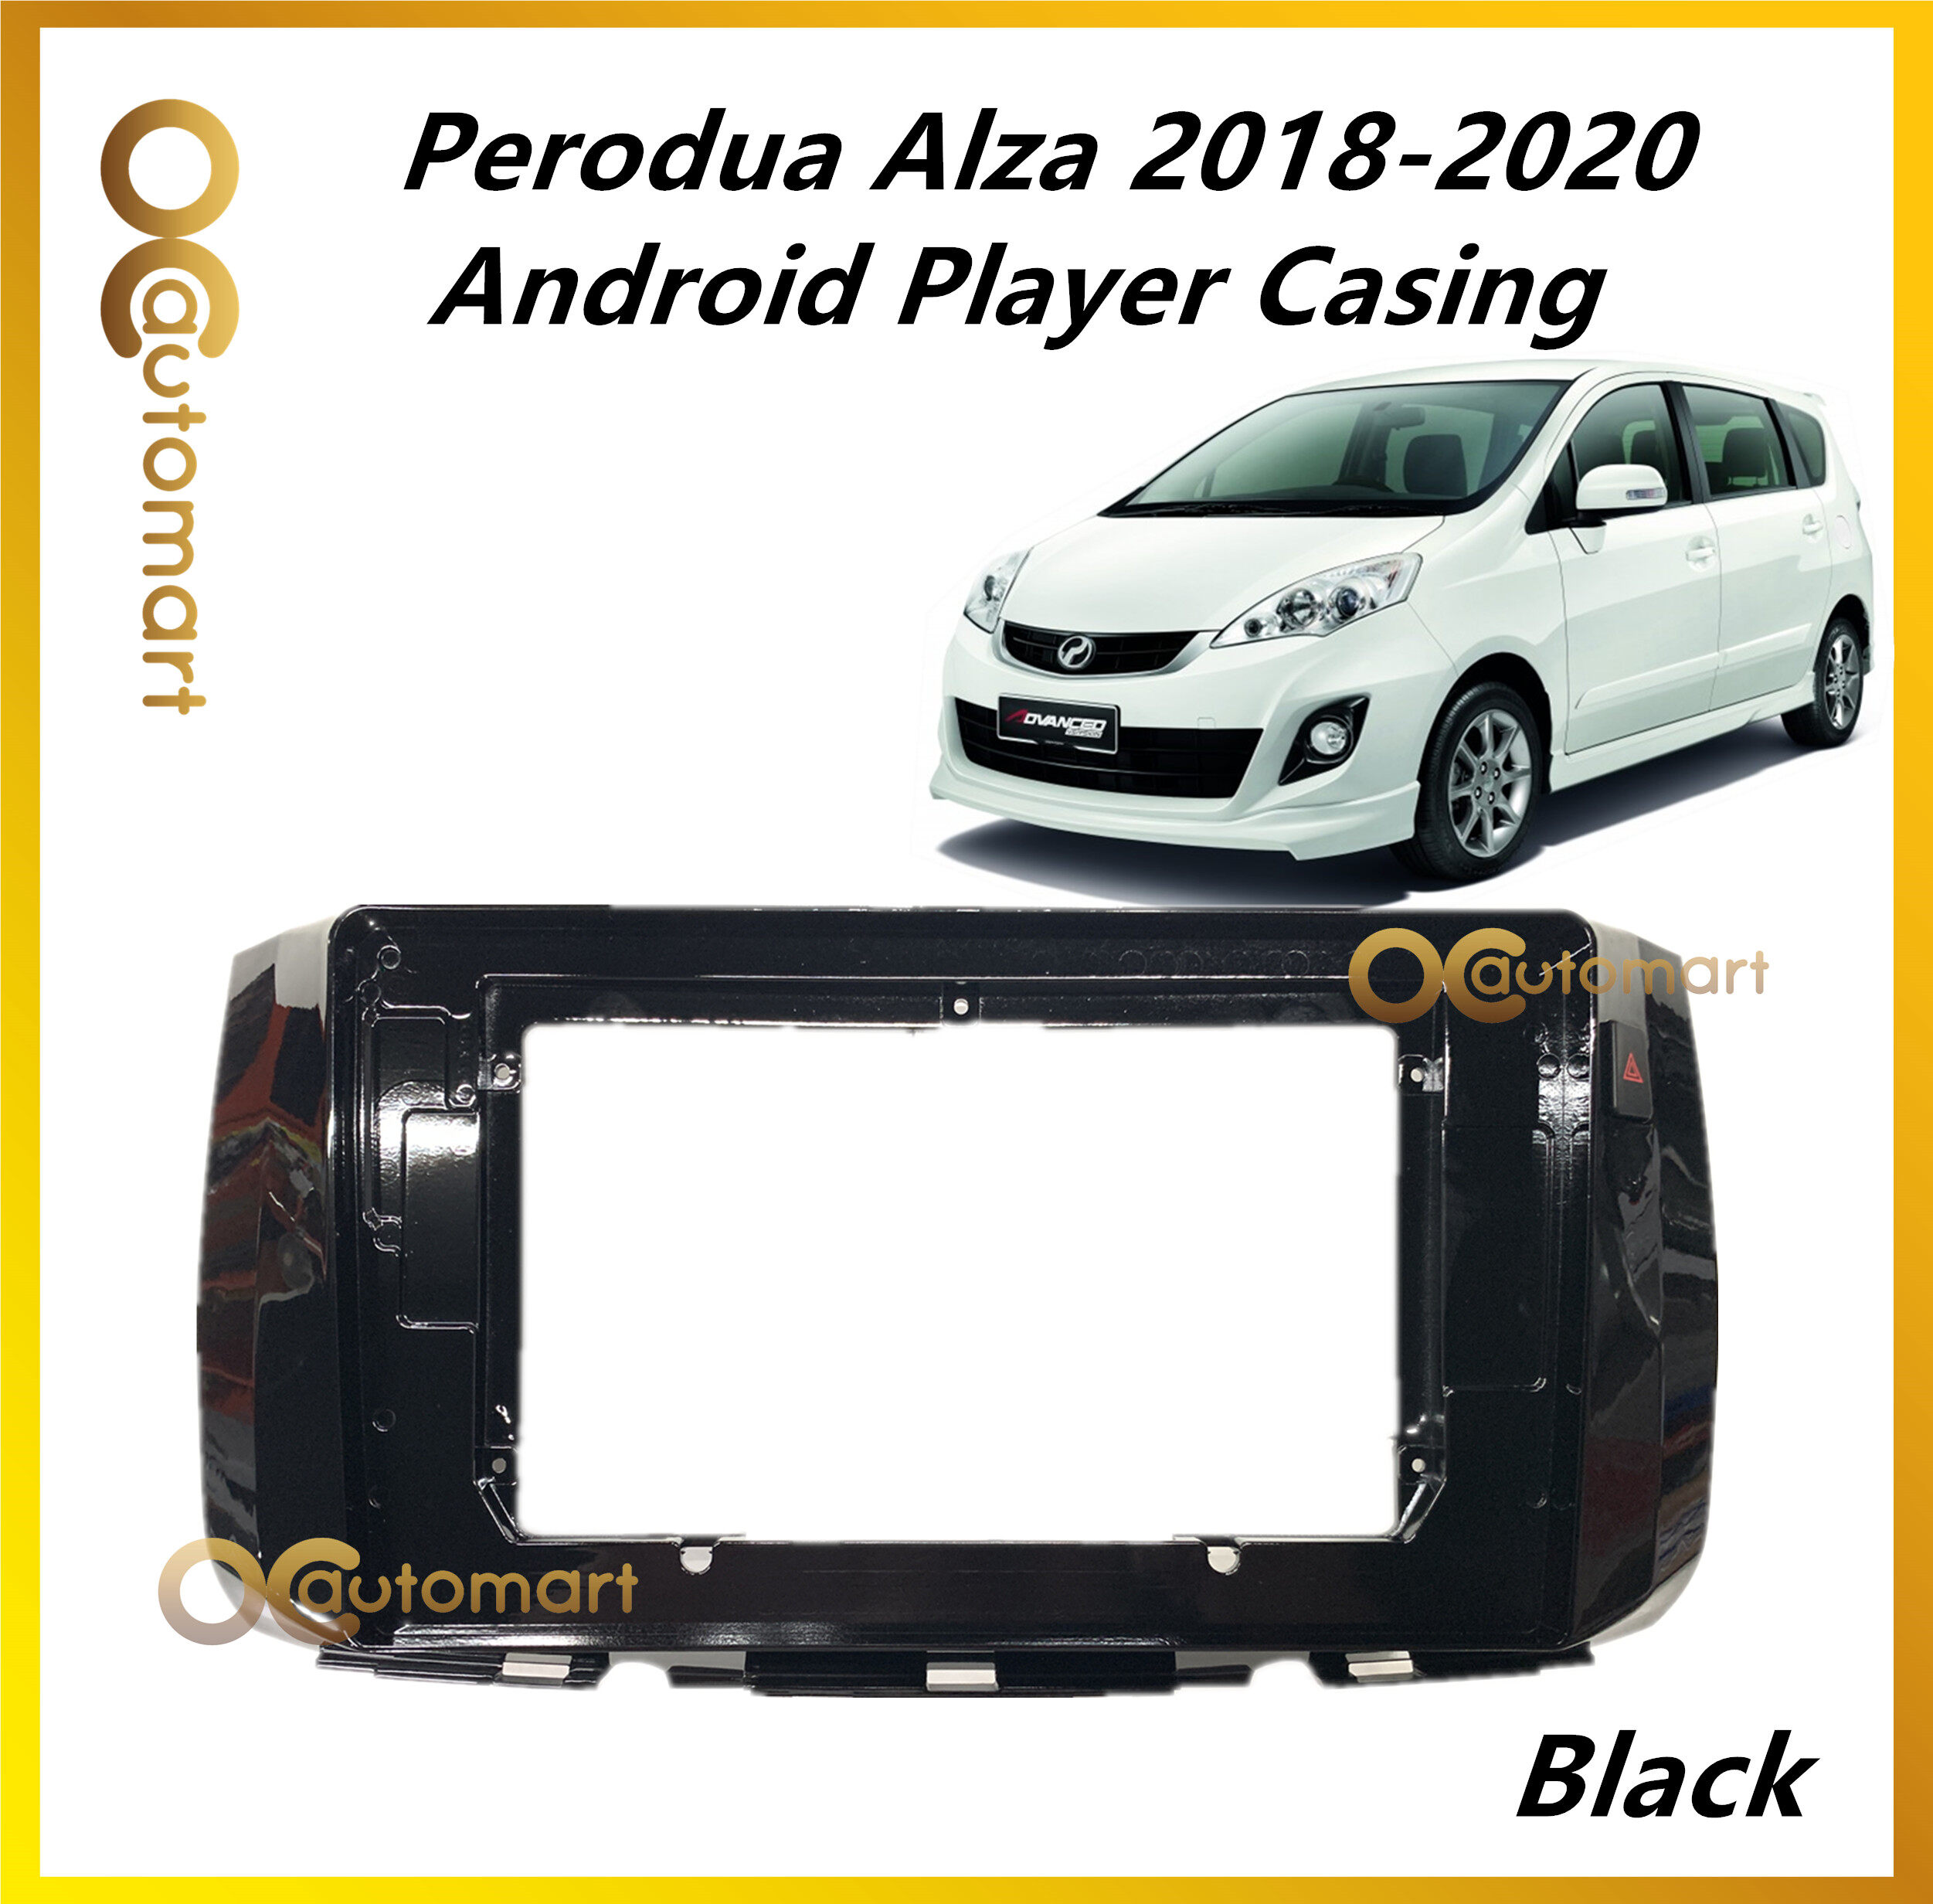 Andriod Player Casing For Perodua Alza 2018 - 2020 With Double Signal Switch